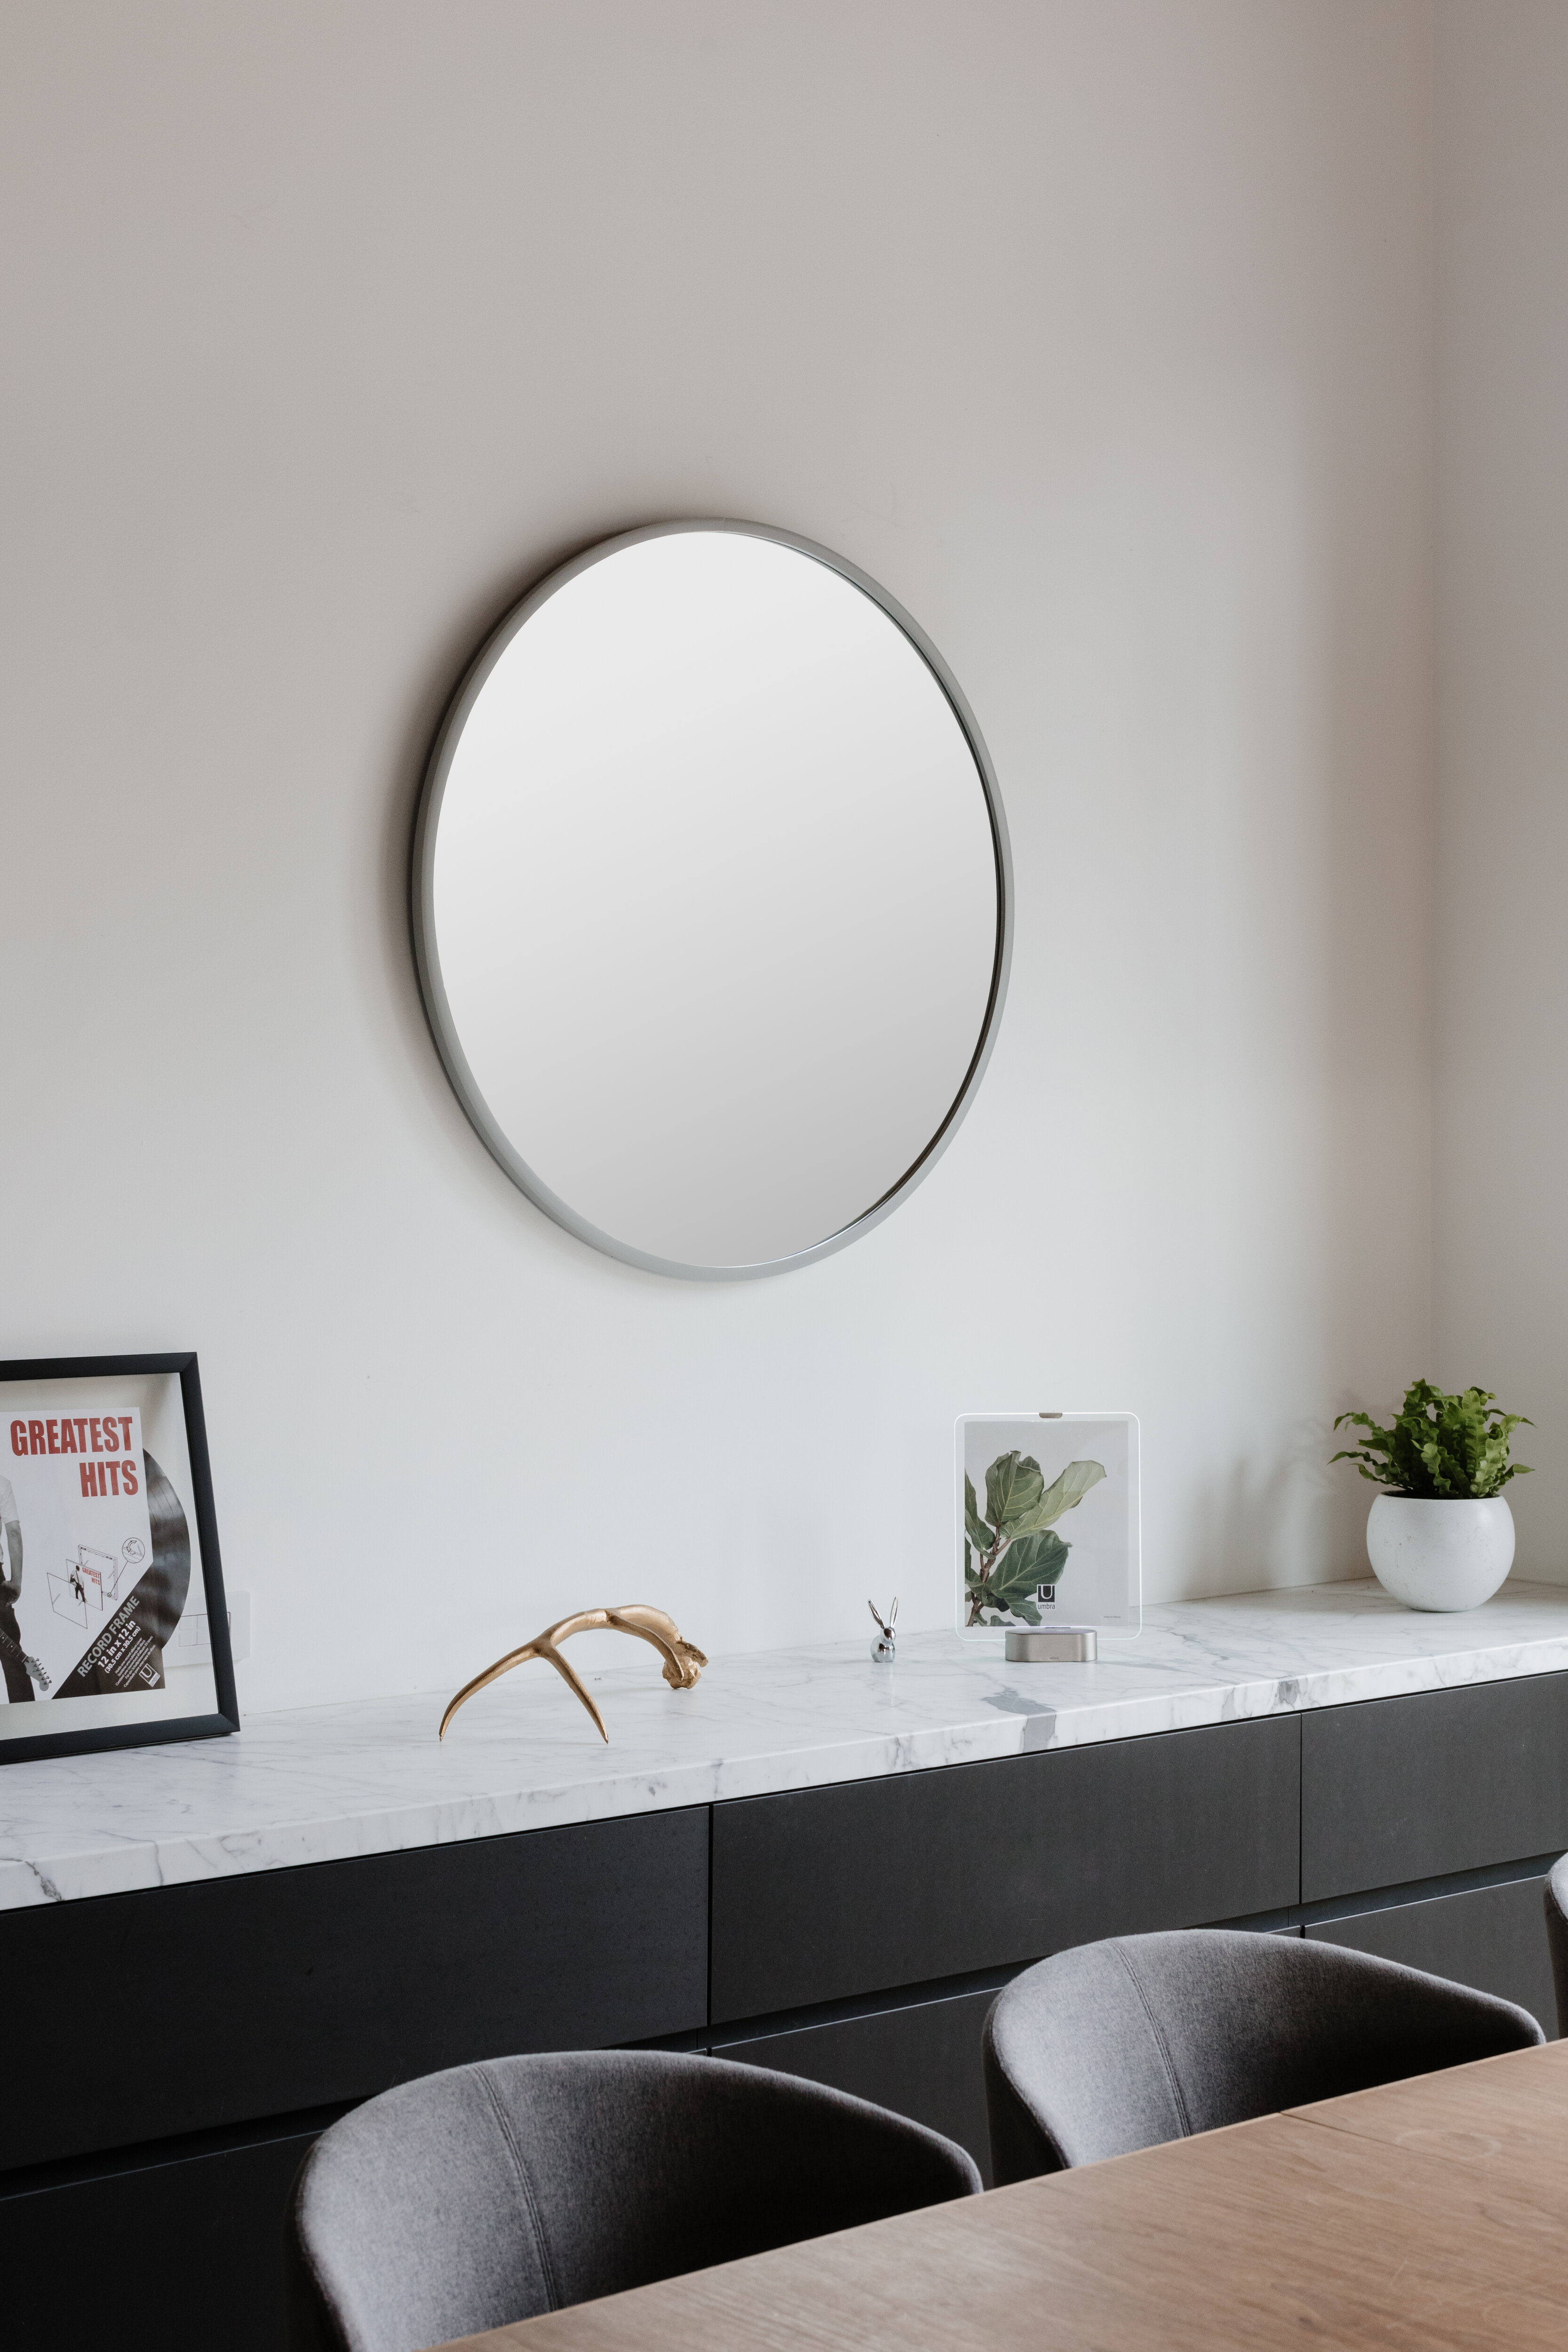 Hub Modern And Contemporary Accent Mirror For Hub Modern And Contemporary Accent Mirrors (Photo 6 of 20)